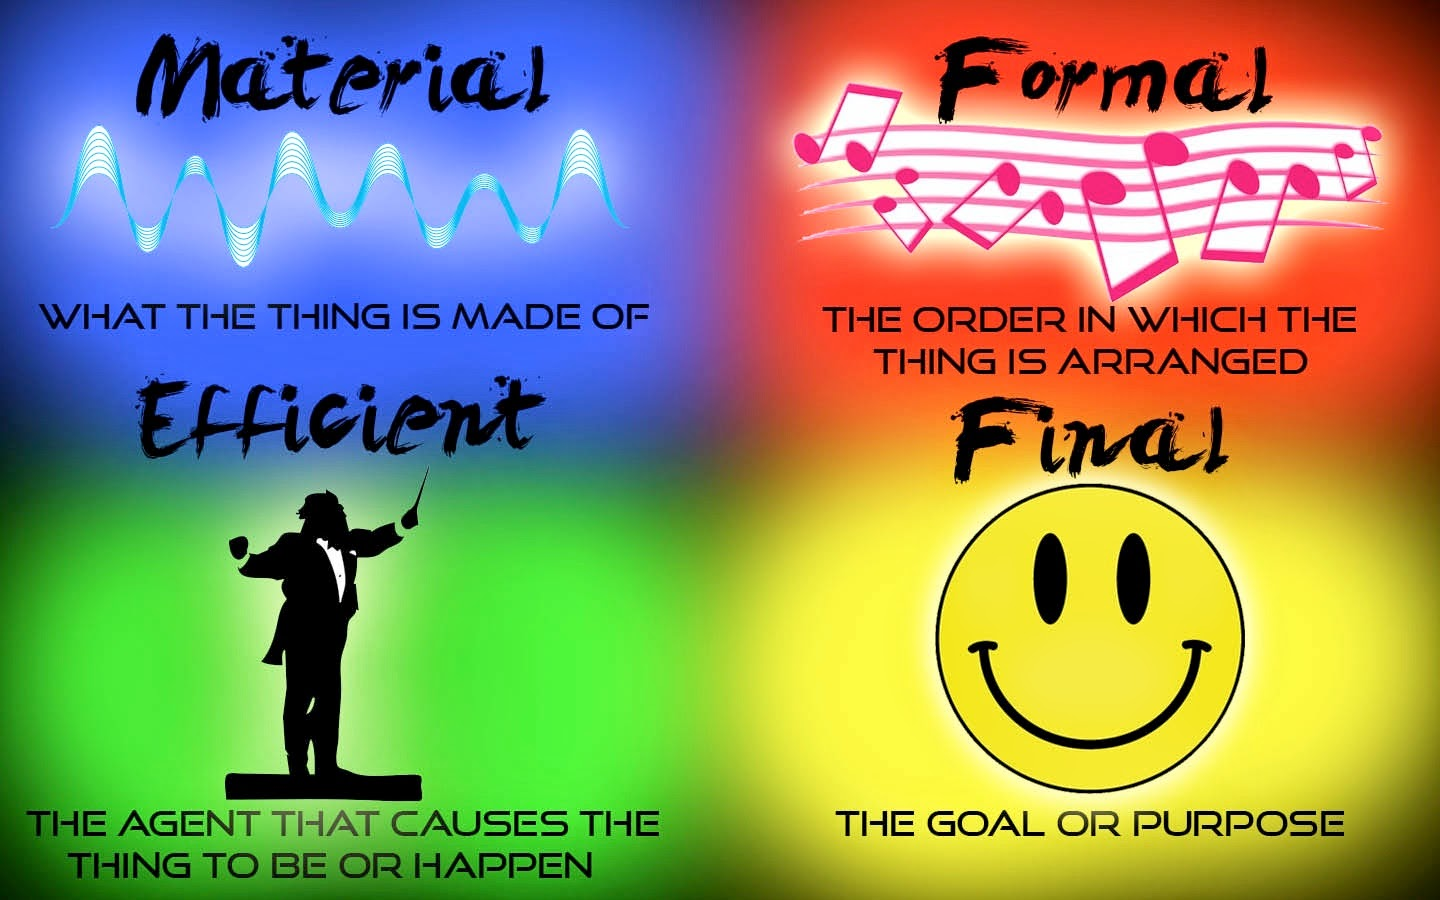 Aristotle and the four causes of the end purpose of an object or action